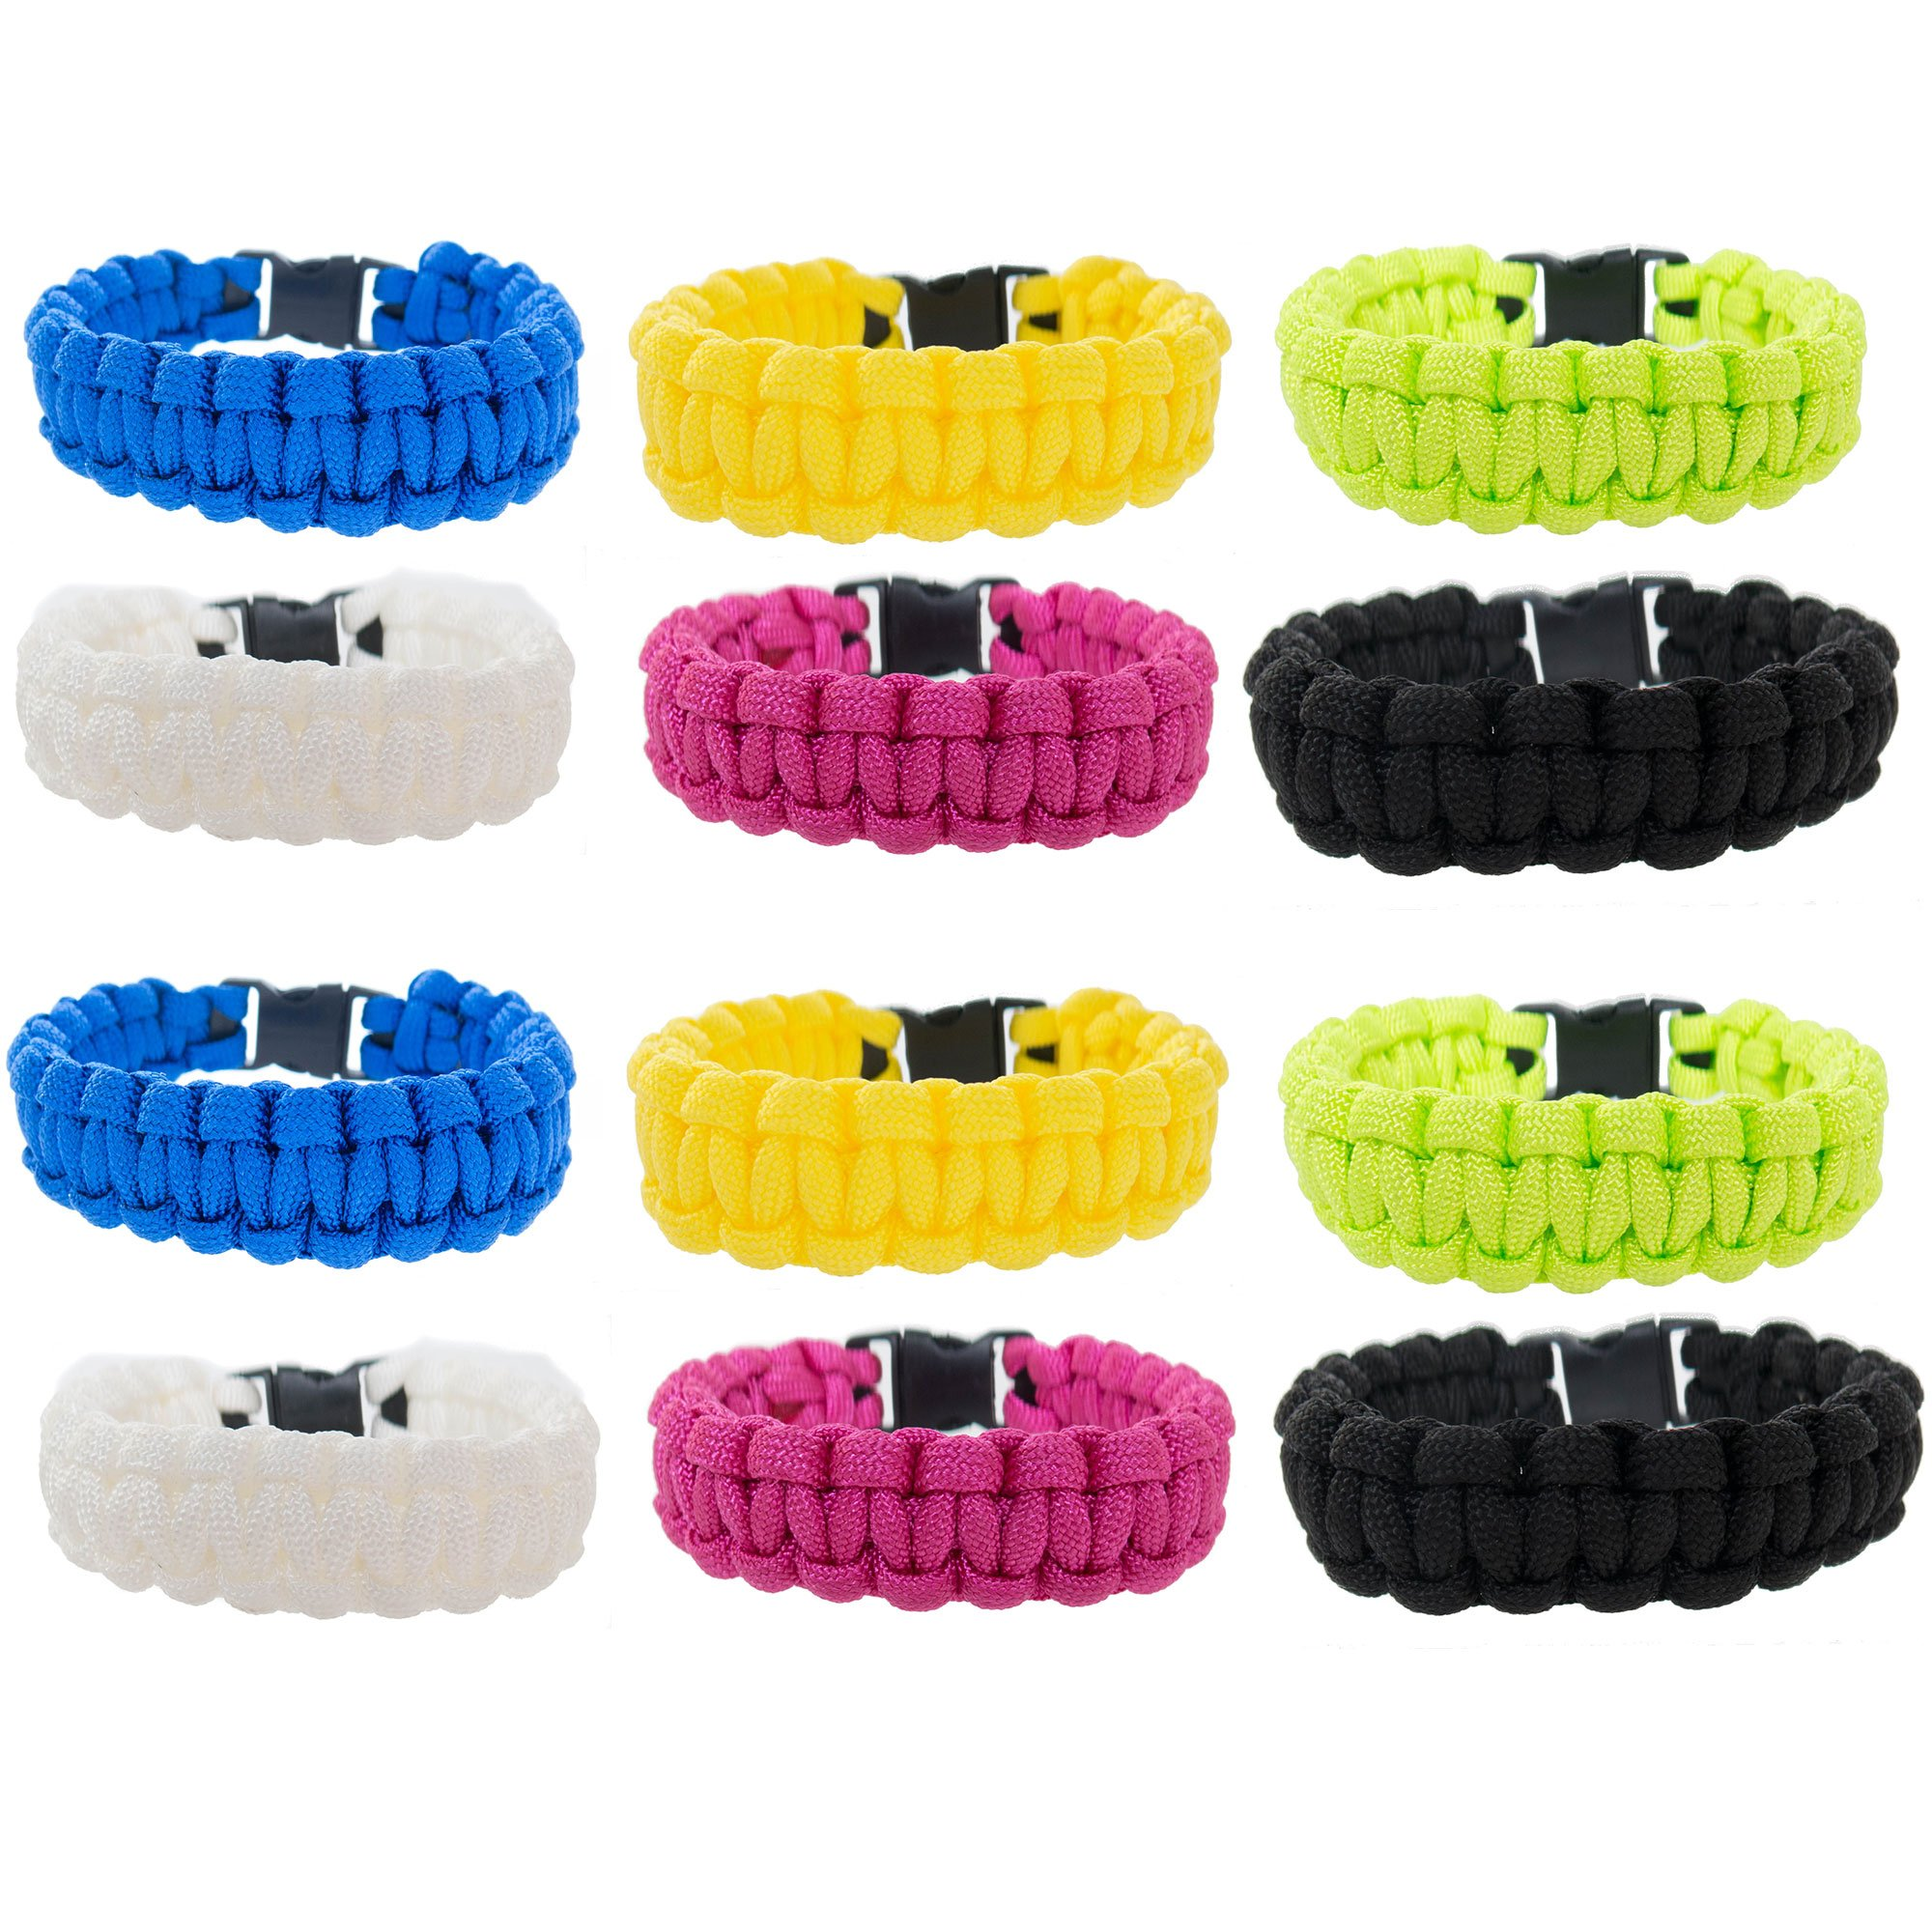 FROG SAC Paracord Bracelets for Men, Boys, Kids 12 PCs - Survival Tactical Bracelet Braided with 550 lbs Parachute Cord - Camping Gifts, Scouts Accessories - Great Birthday Party Favors (Solid)